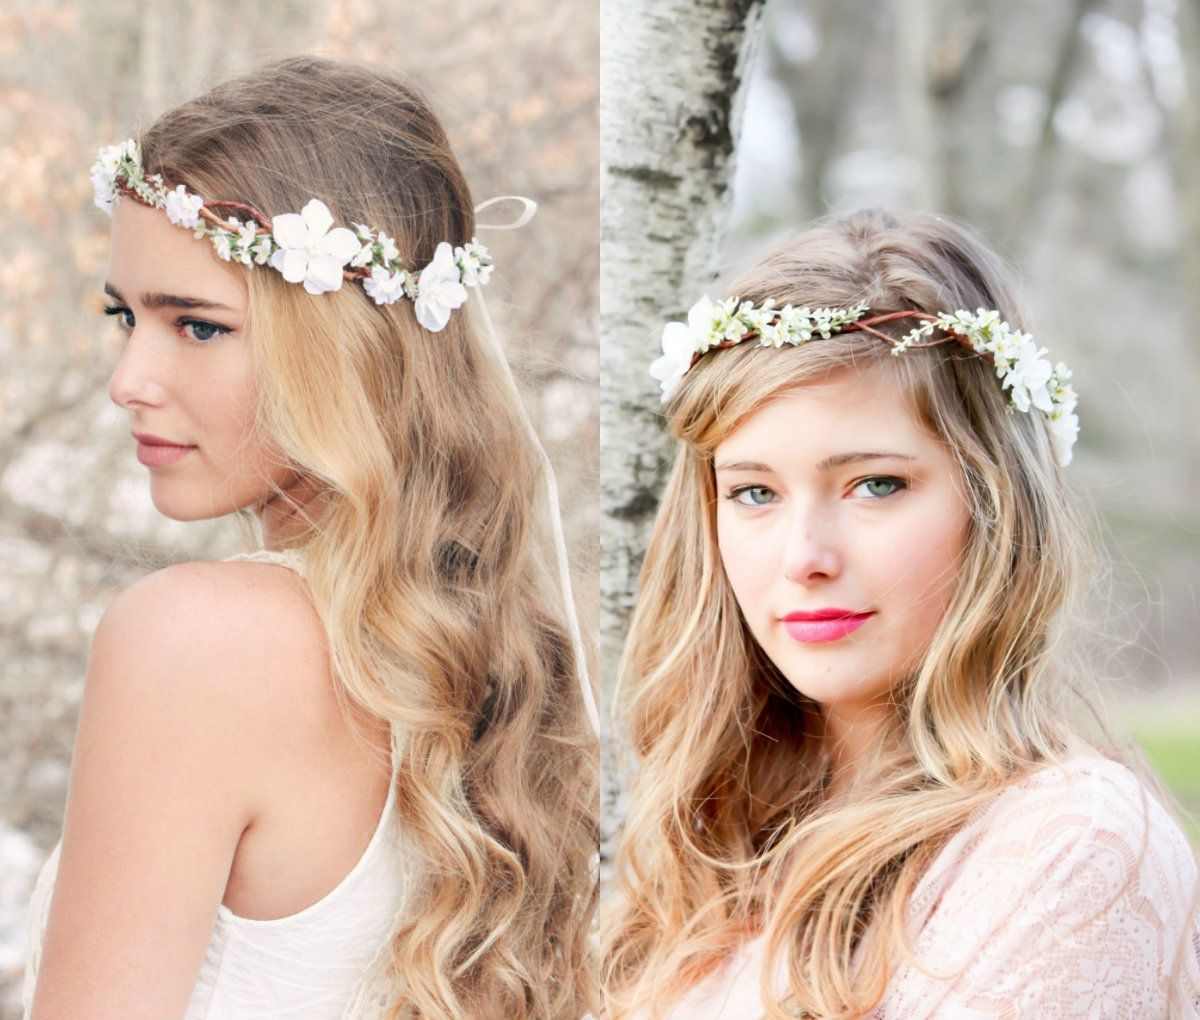 flower crown hochzeit frisuren in diesem sommer heiraten